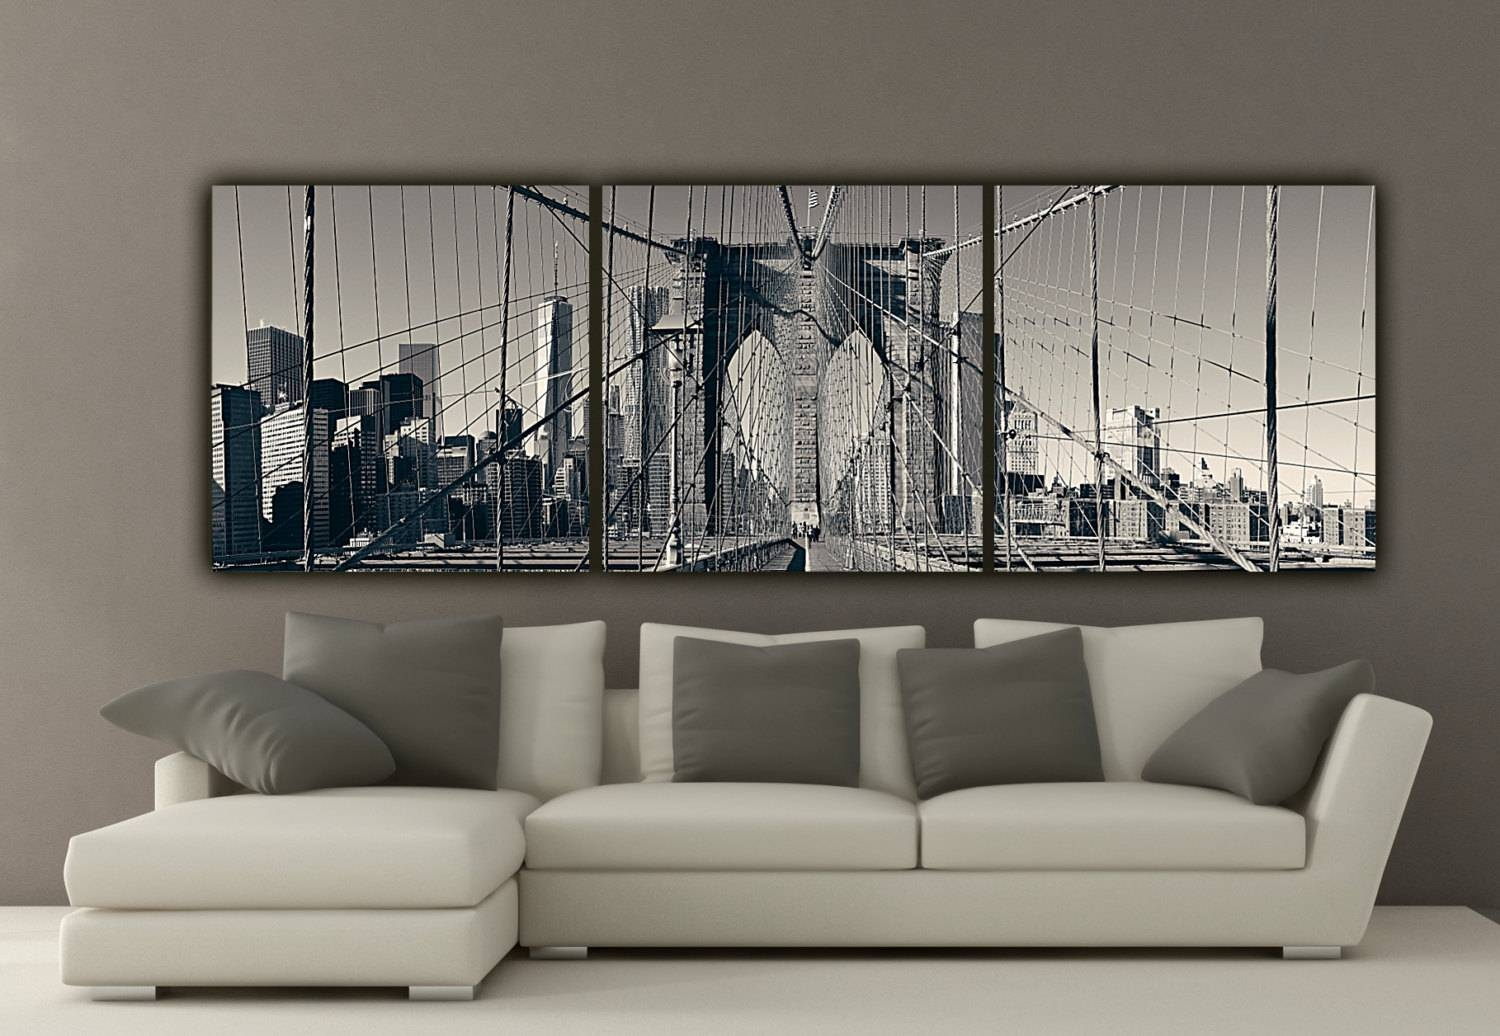 New York Brooklyn Bridge Canvas Wall Art Black And White New Pertaining To Most Recently Released New York City Wall Art (View 2 of 20)